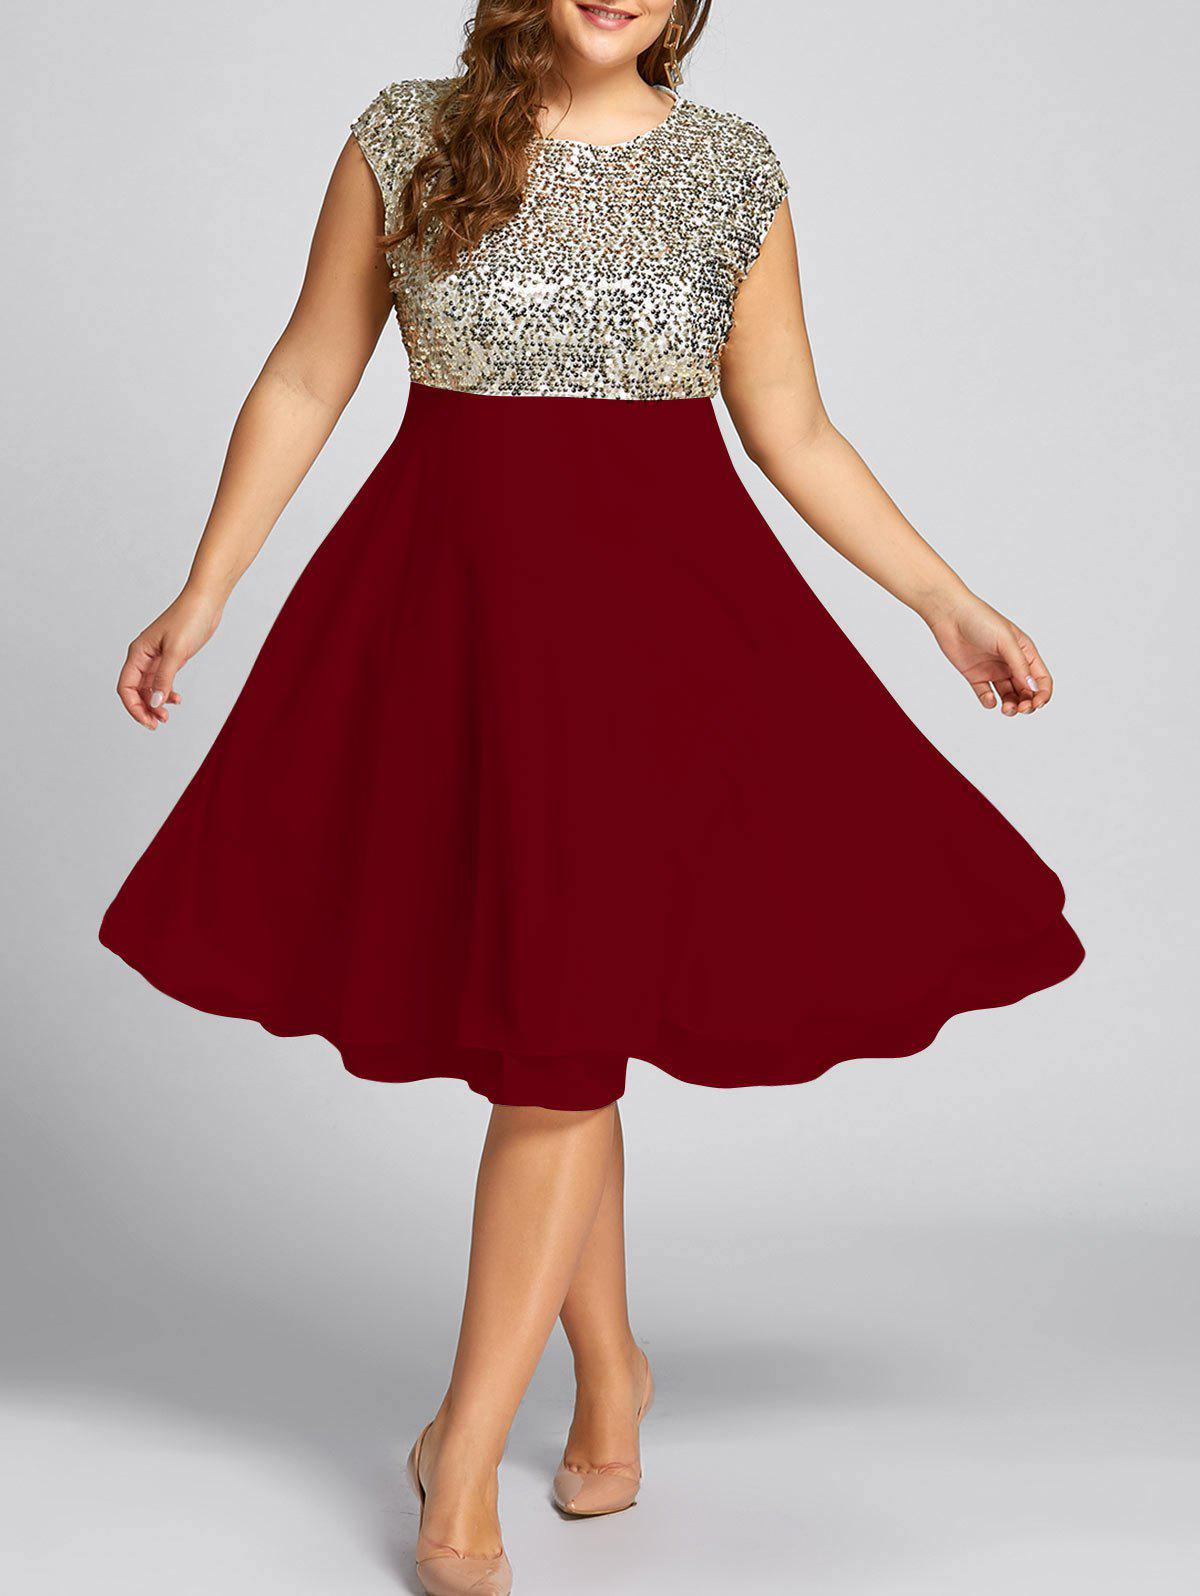 2018 Plus Size Sequin Sparkly Cocktail Dress Wine Red Xl In Plus